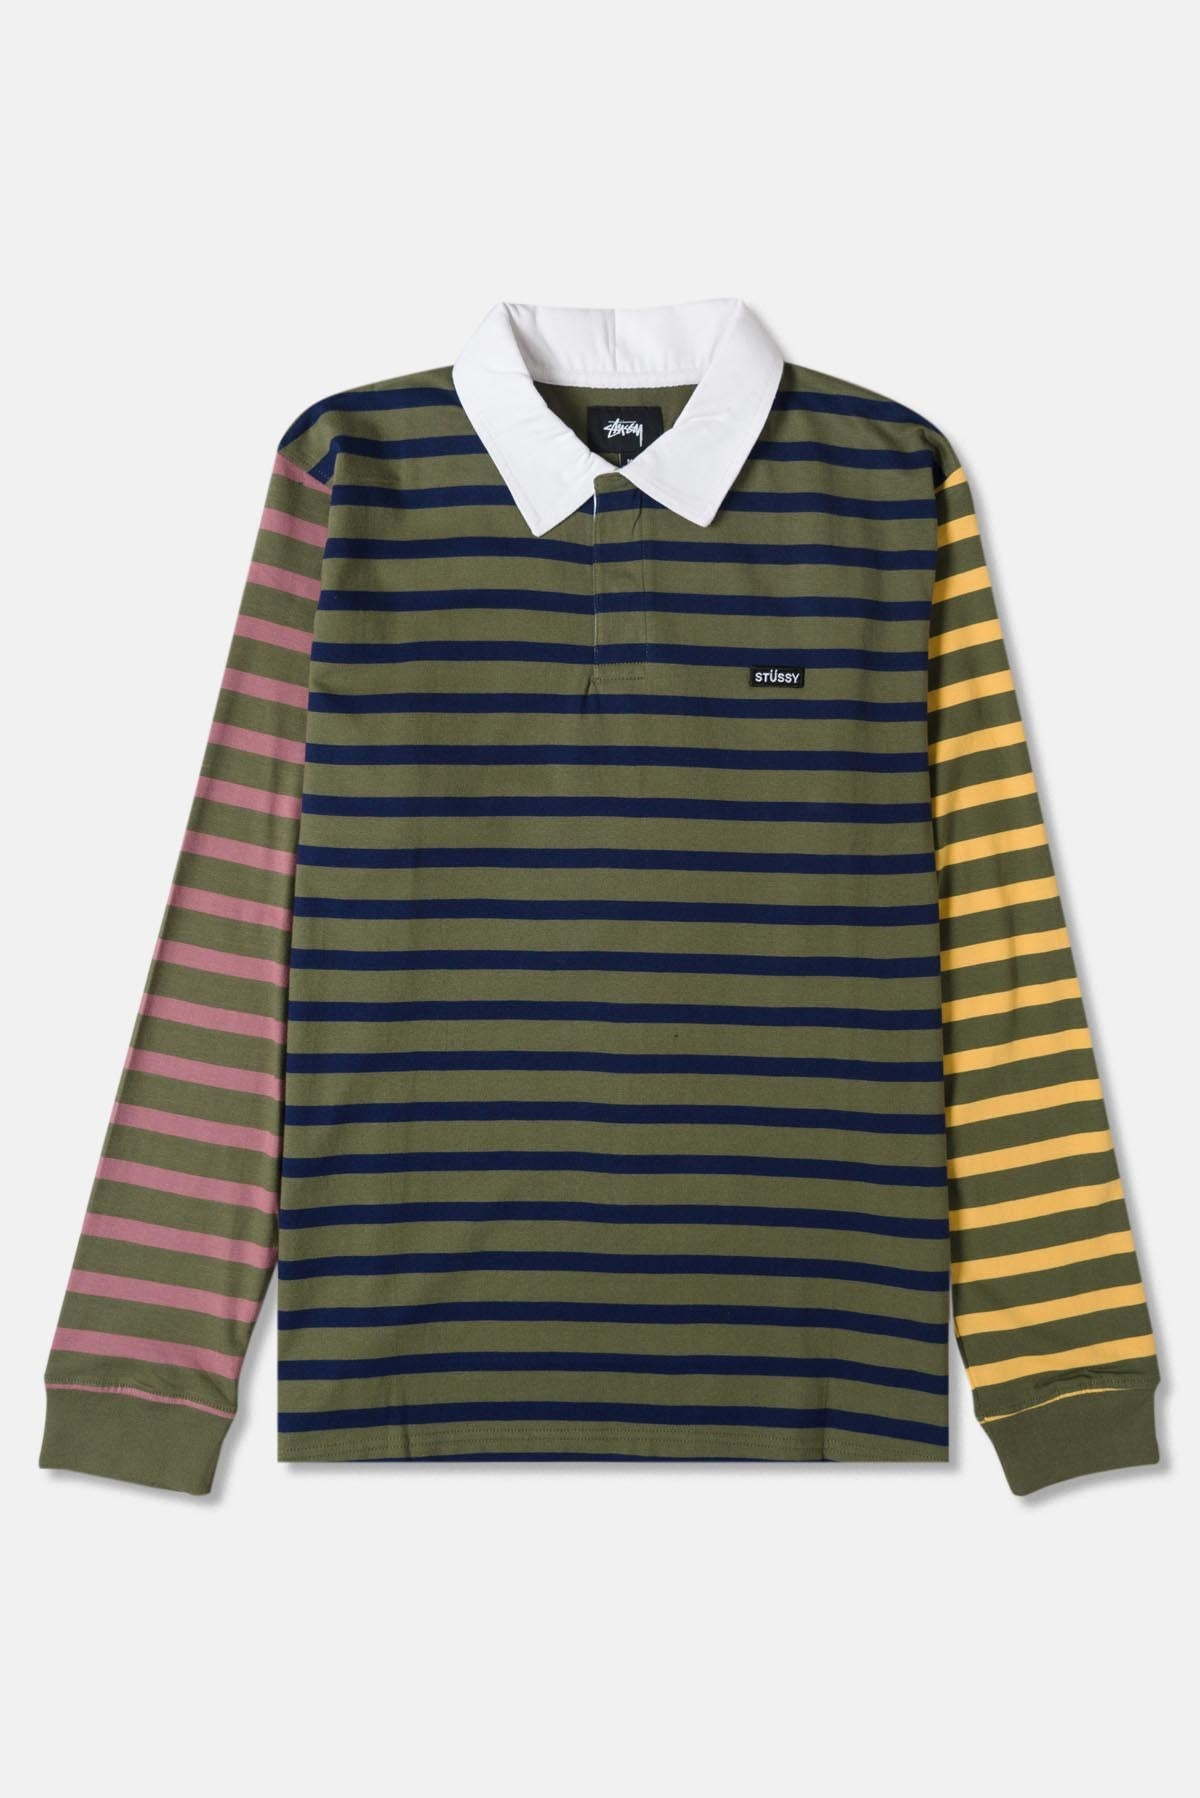 81cb46d6eb4 Stussy Jonah Stripe LS Rugby Top available from Priory